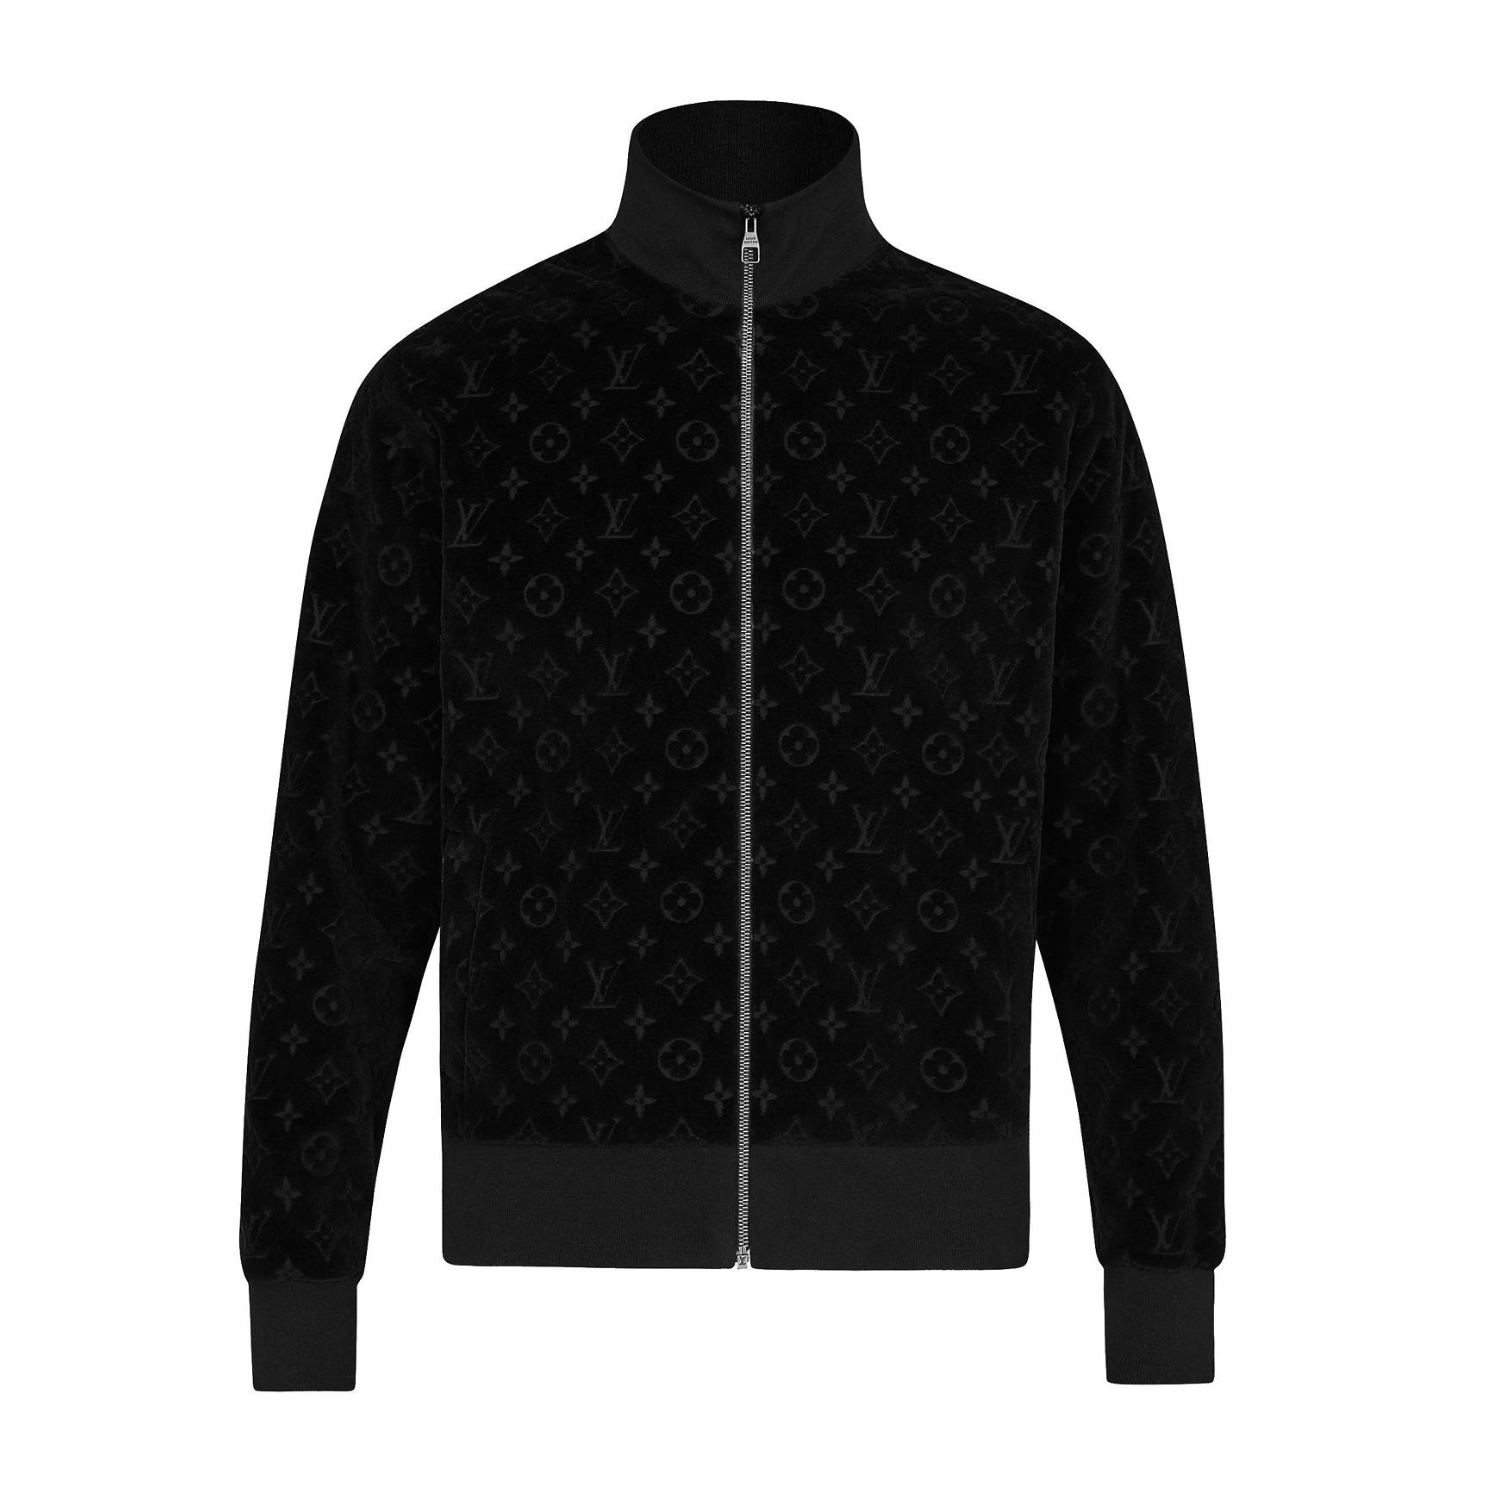 COTTON VELOUR BLOUSON - €1100 $15801A46W9MONOGRAM VELOURS